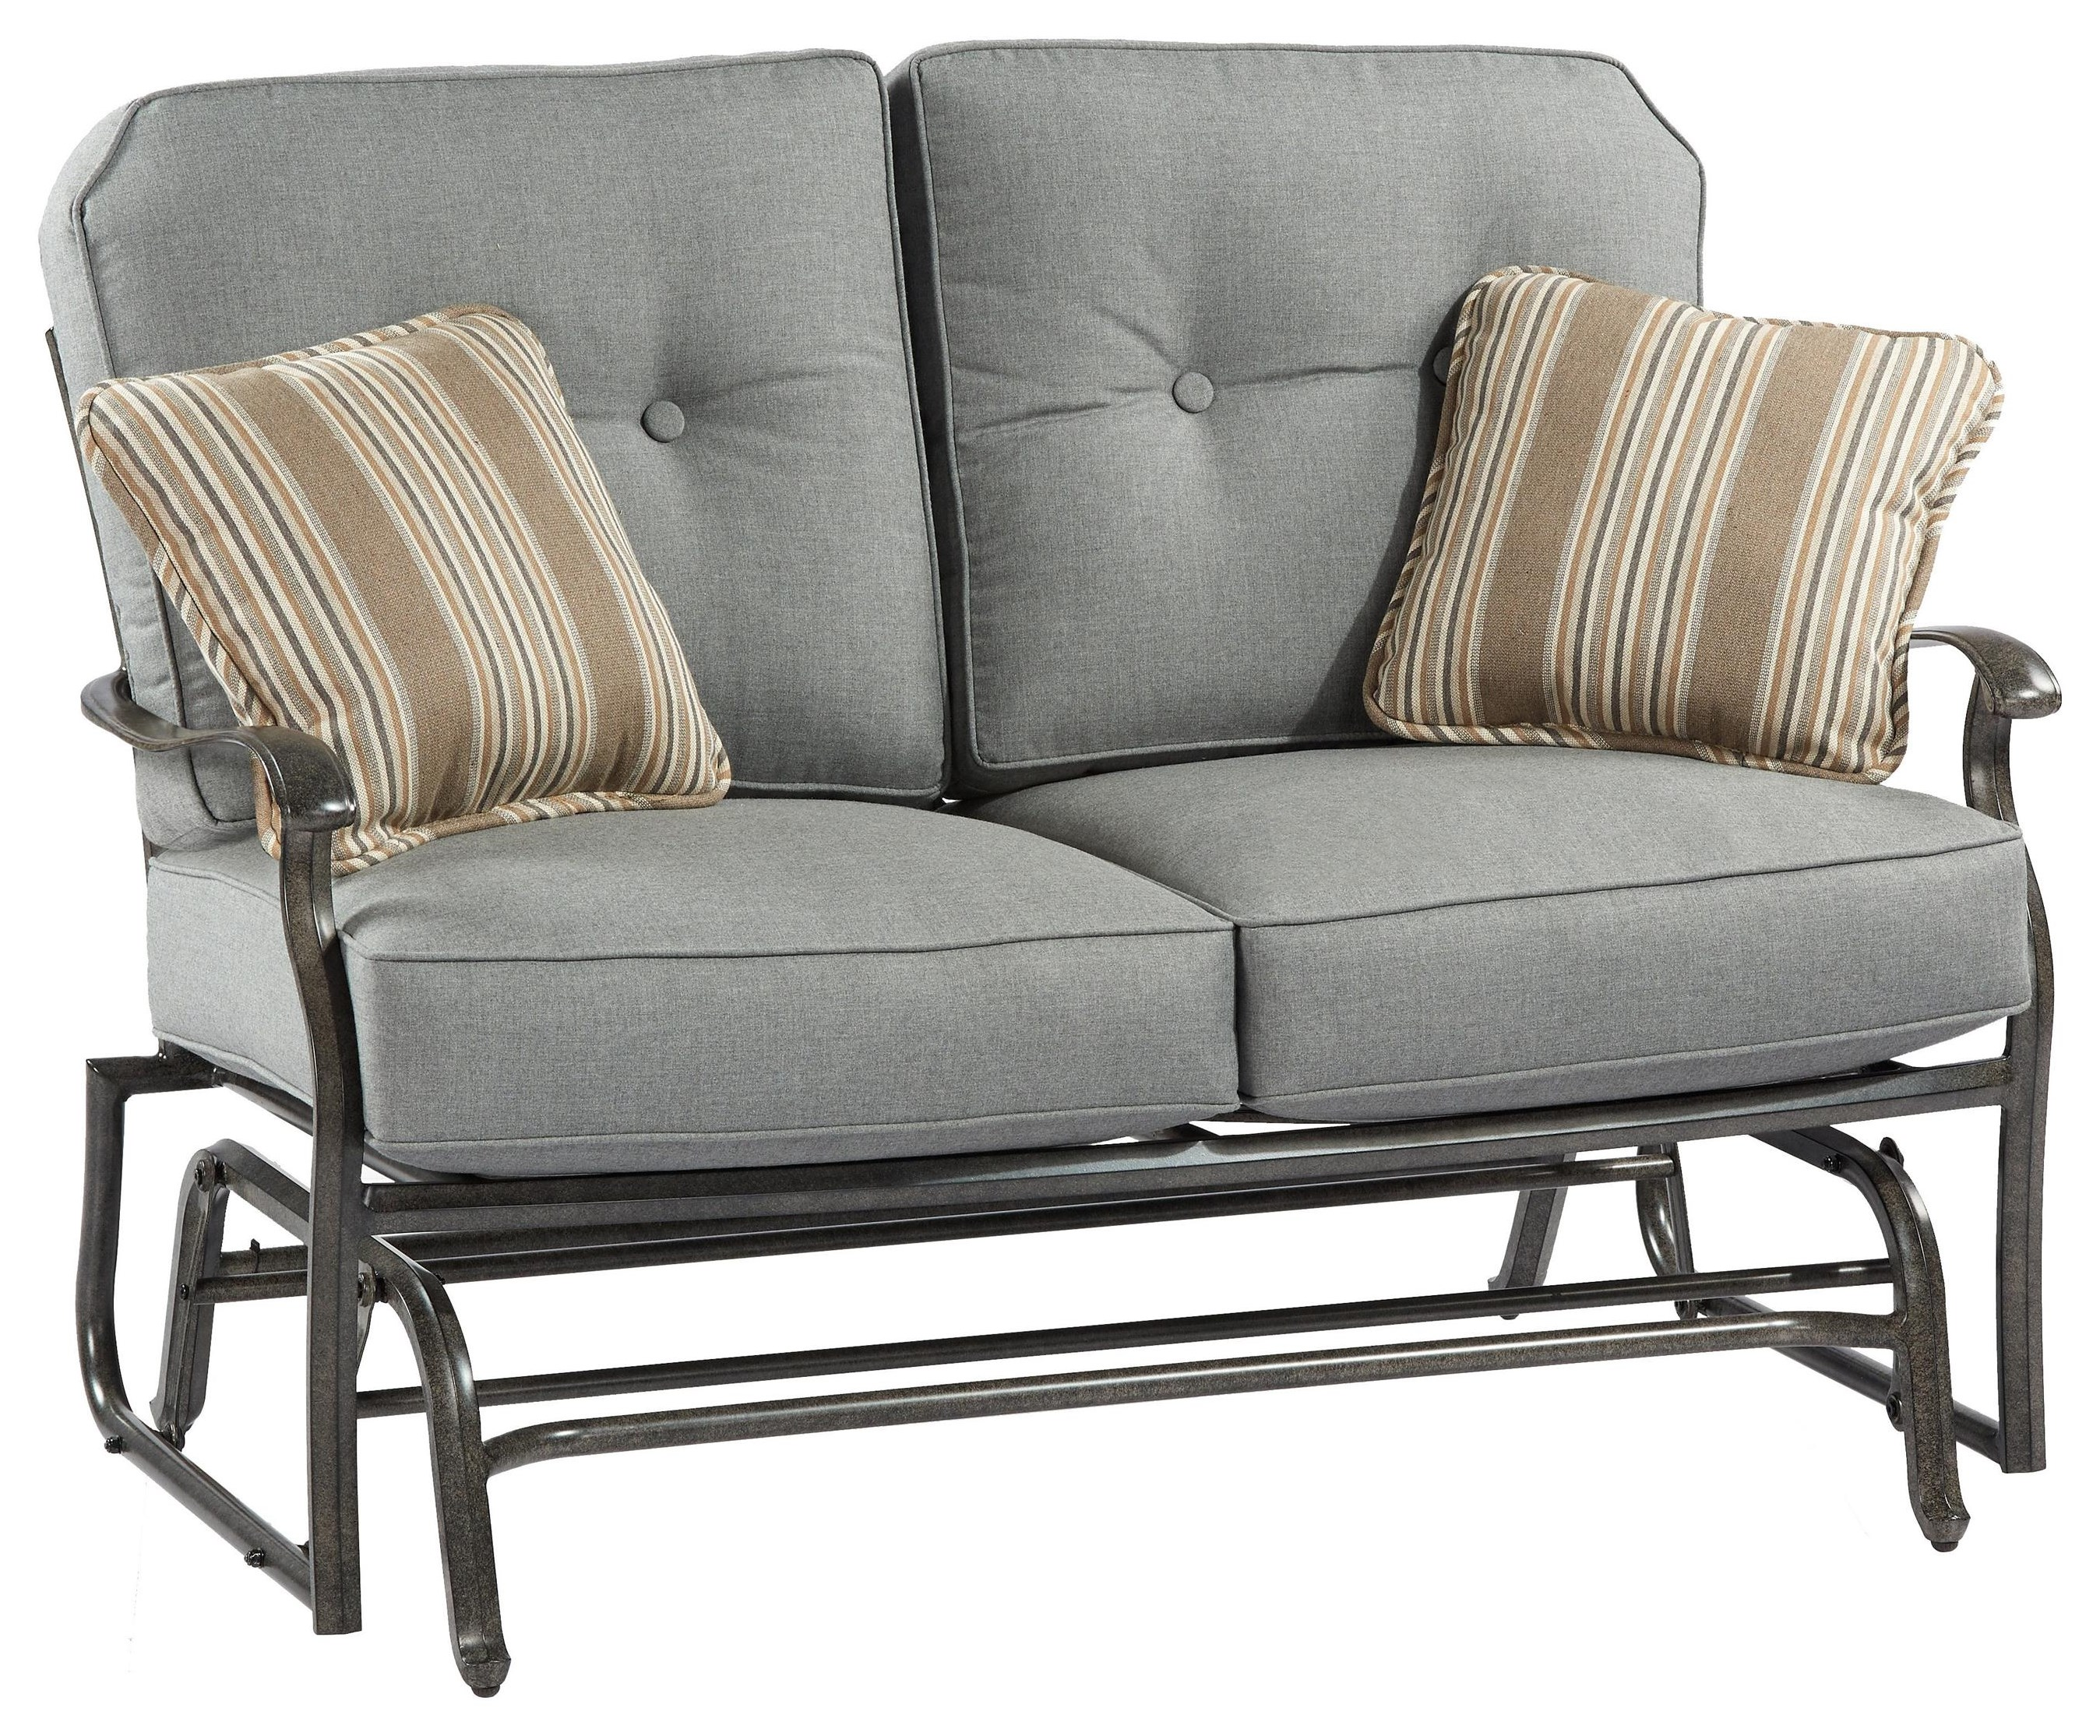 Madison LOVESEAT GLIDER With 2 Pillows by Apricity Outdoor at Johnny Janosik